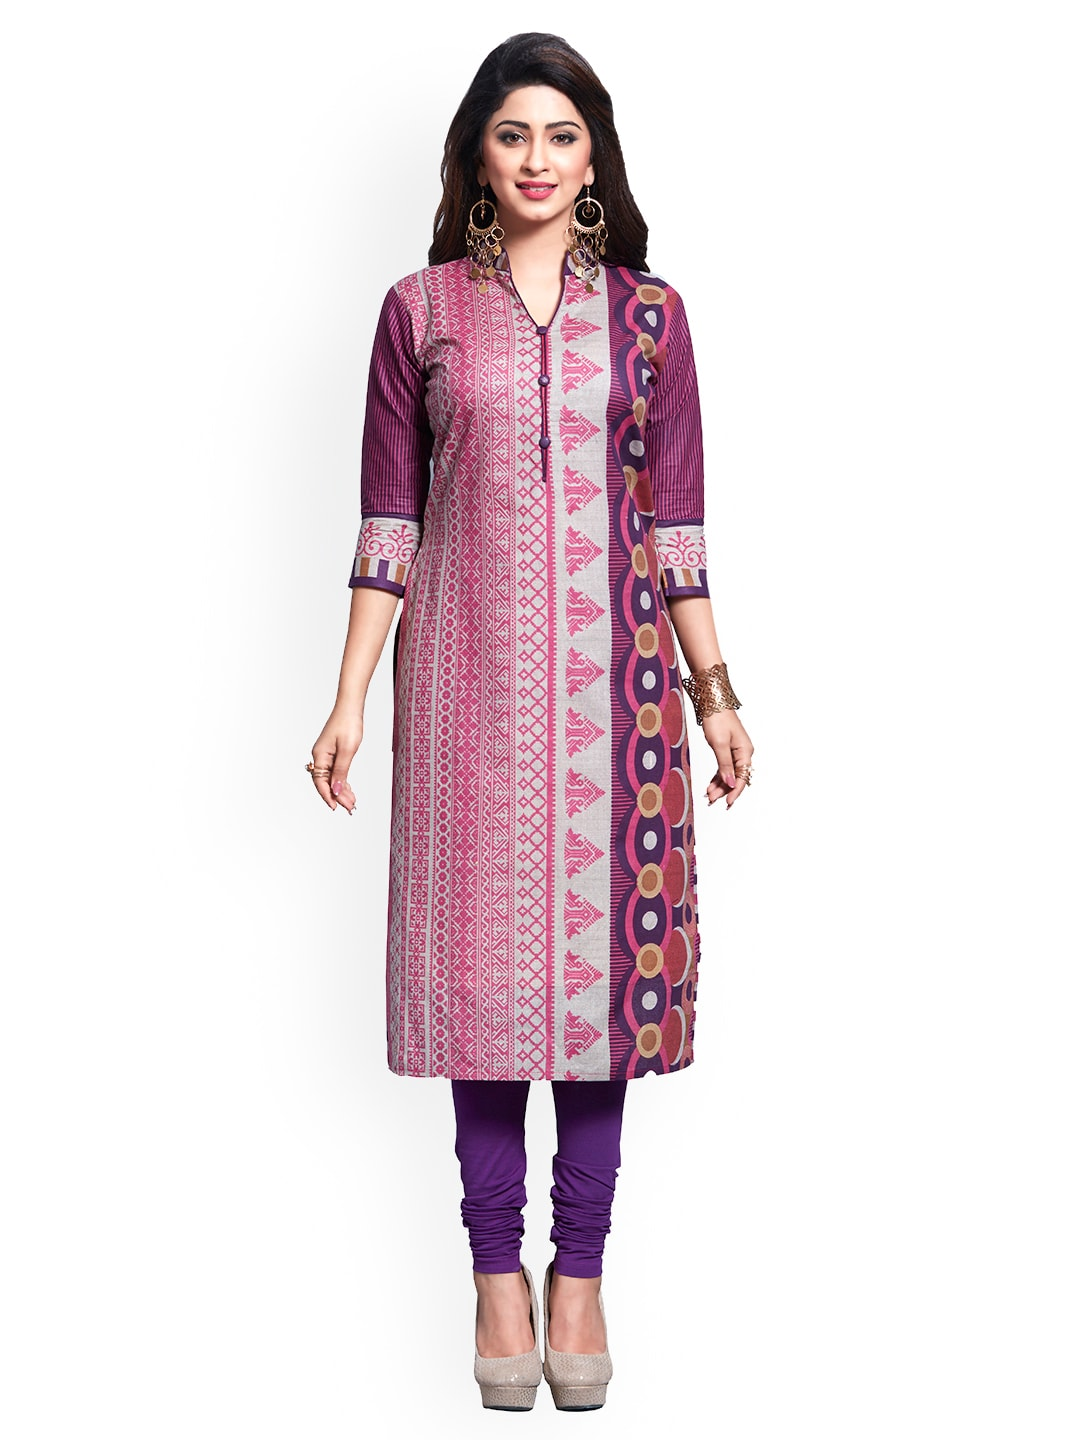 Ishin Purple & Grey Pure Cotton Unstitched Dress Material image